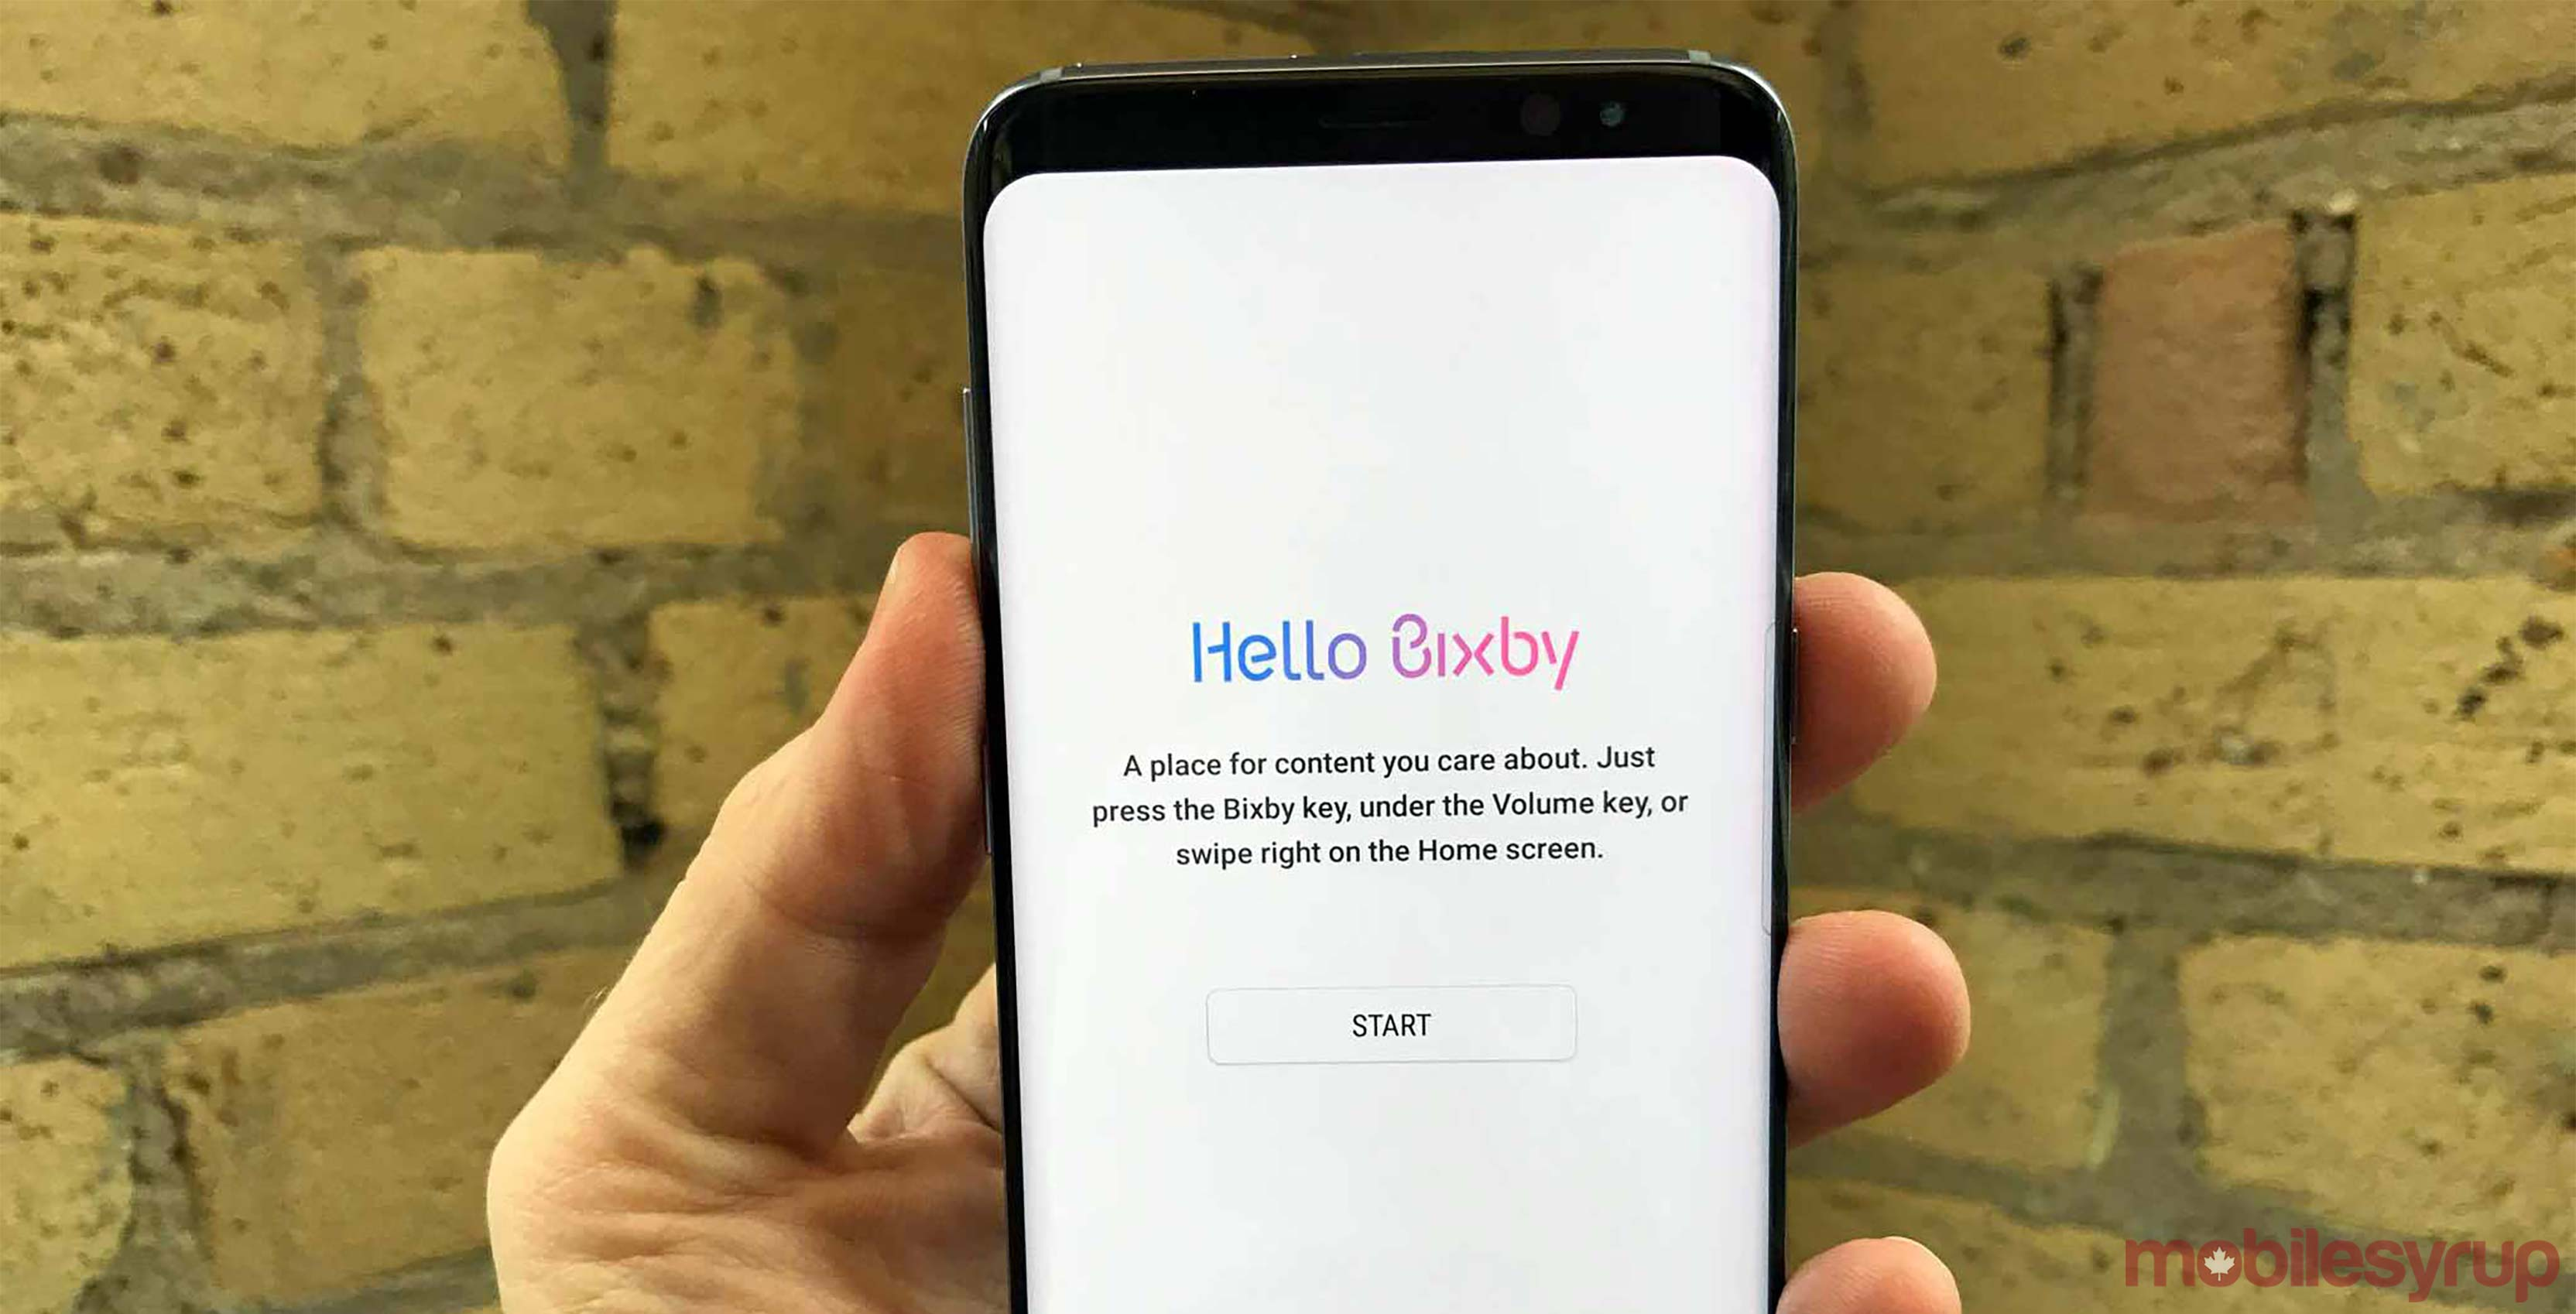 Bixby on the Samsung Galaxy S8